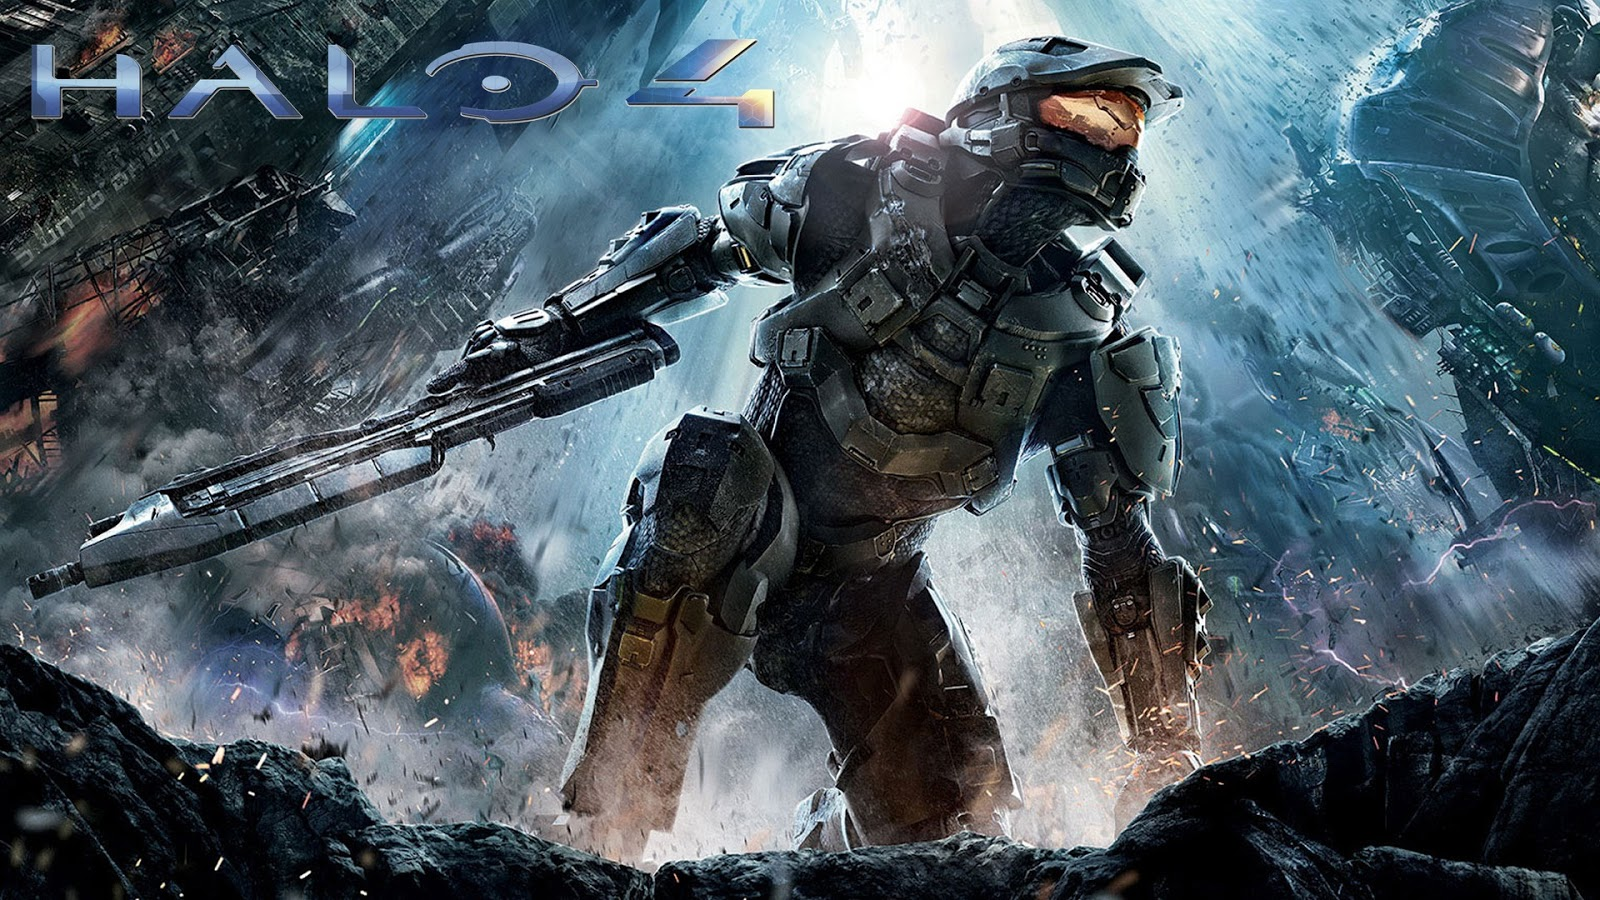 halo 4 free online games